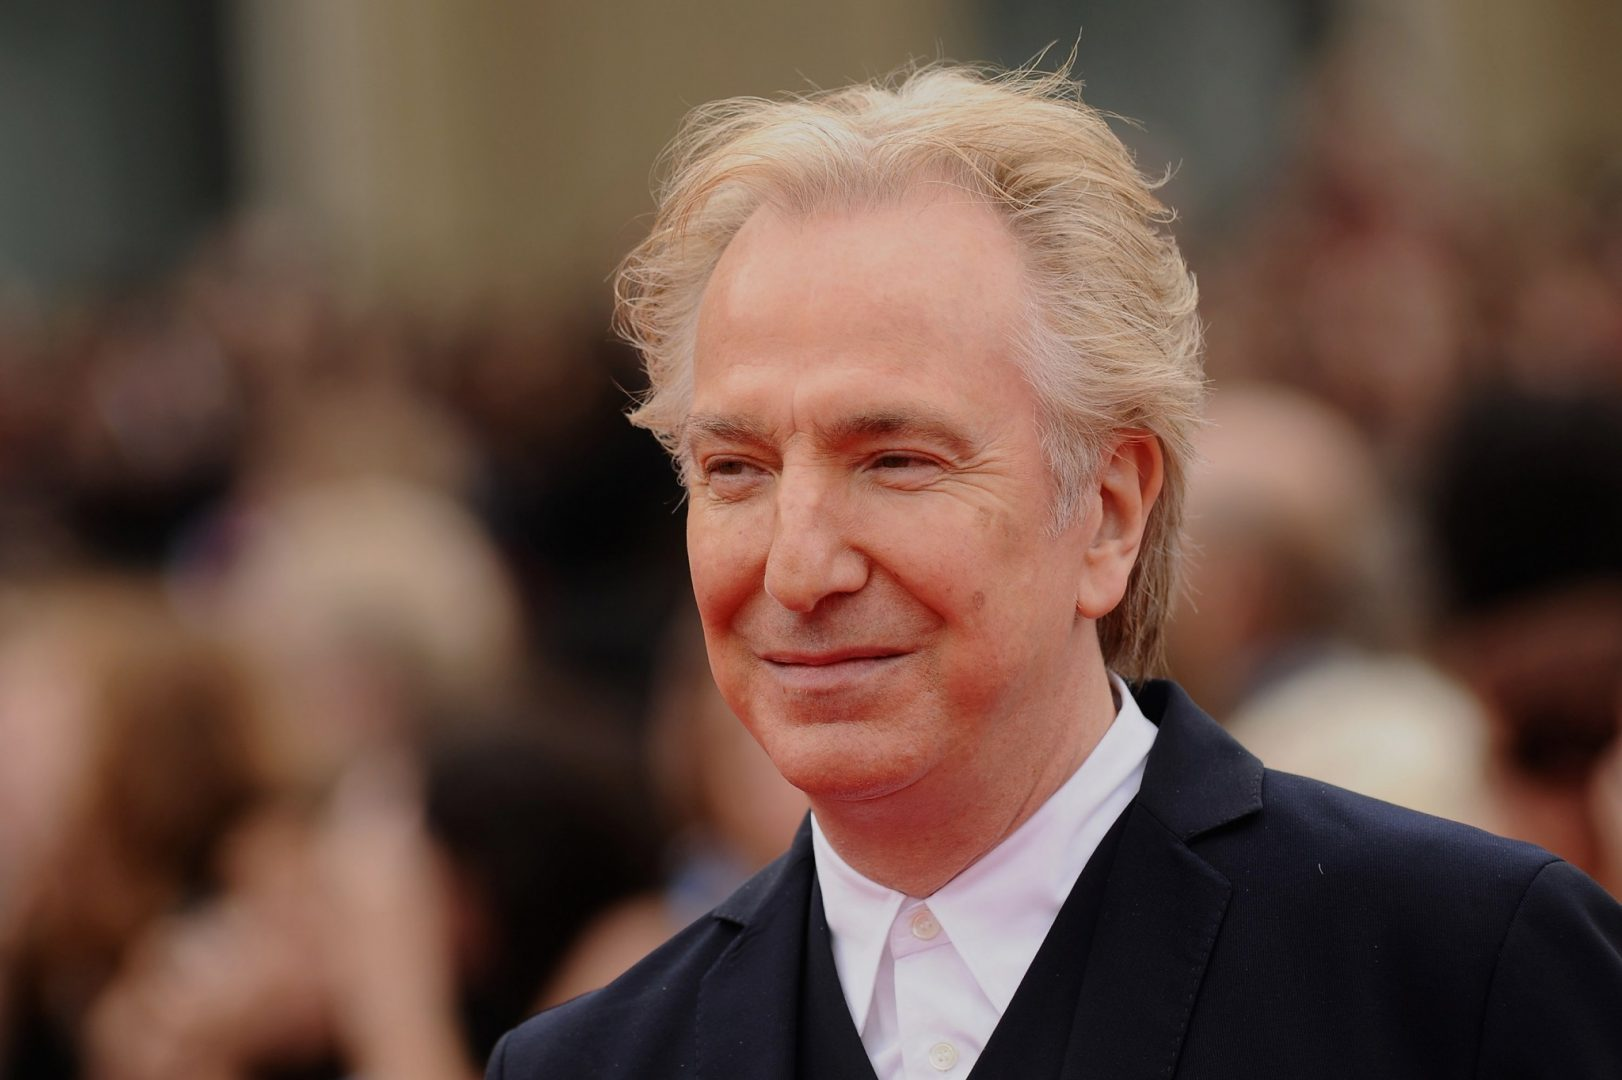 Alan Rickman at the premiere for Harry Potter And The Deathly Hallows - Part 2 in 2011